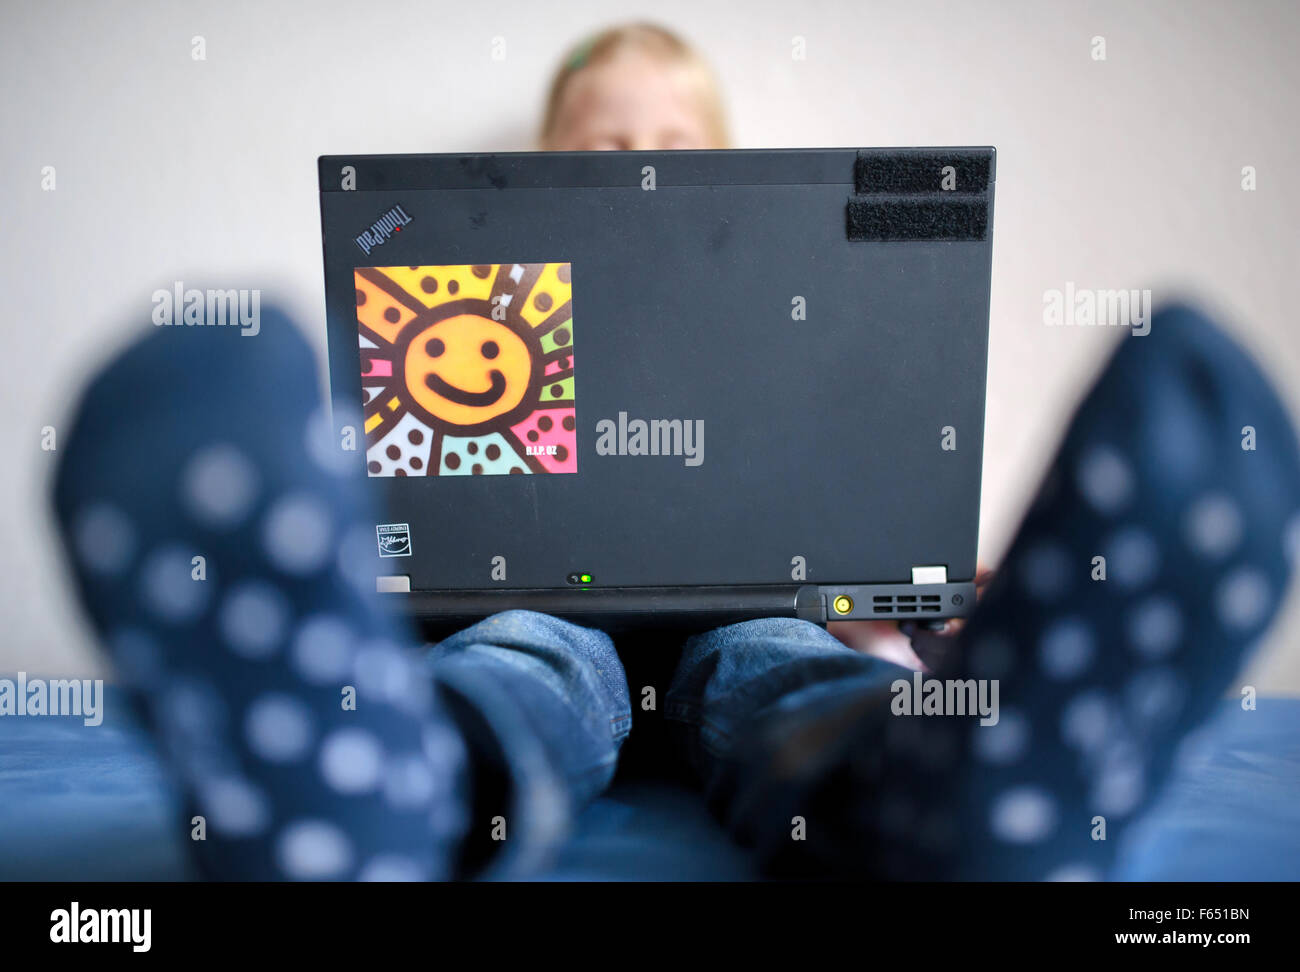 ILLUSTRATION - A child watches a cartoon on a laptop. The photo was taken on 06 January 2015 in Dresden (Saxony). Photo: Thomas Eisenhuth - model released - Stock Photo